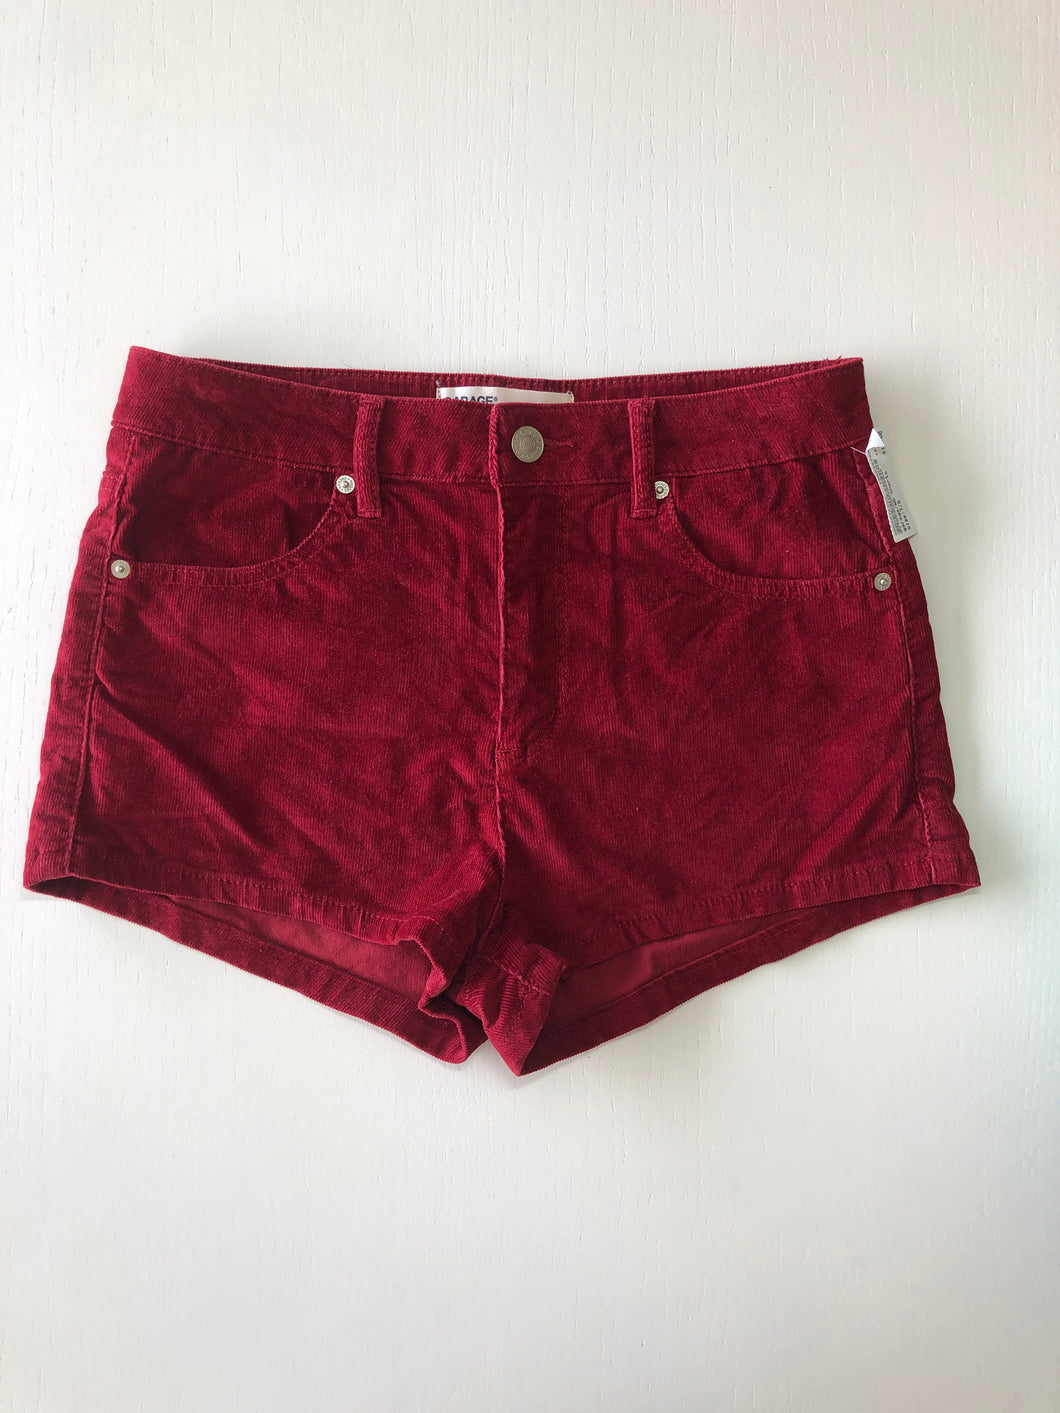 Gently Used Women's Garage Shorts Size 7